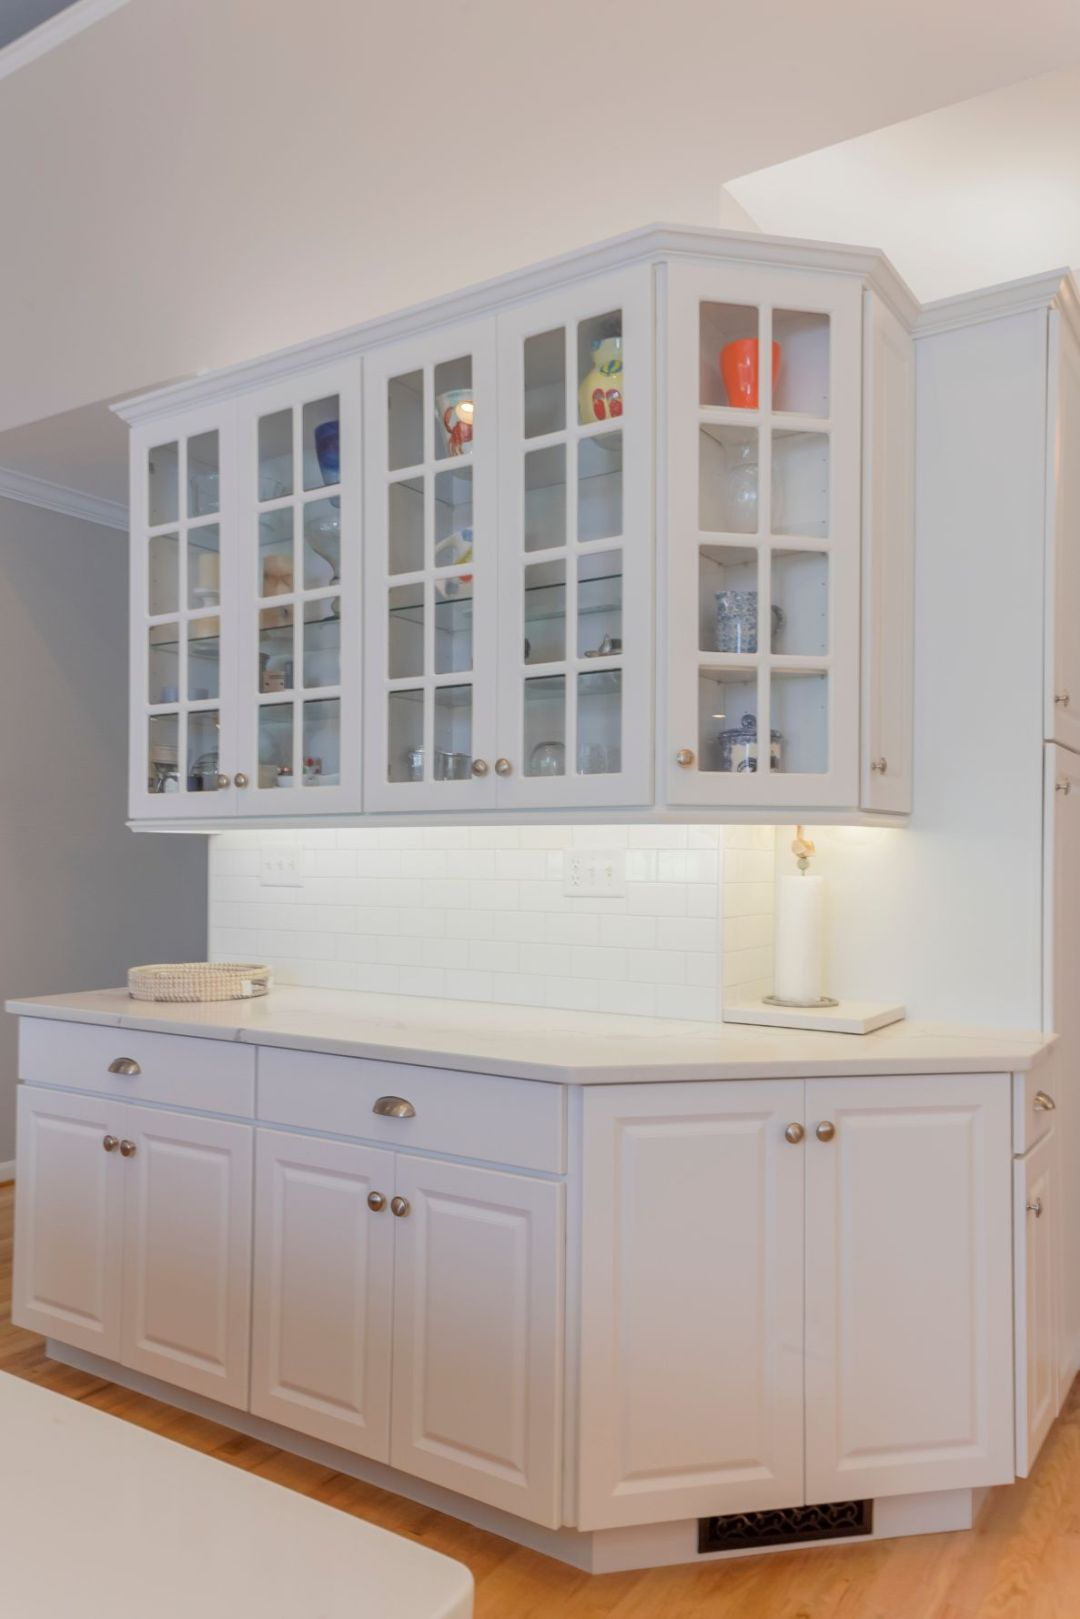 Kitchen Remodel in Willow Oak, Ocean View DE with White Cabinets and White Subway Backsplash Tiles